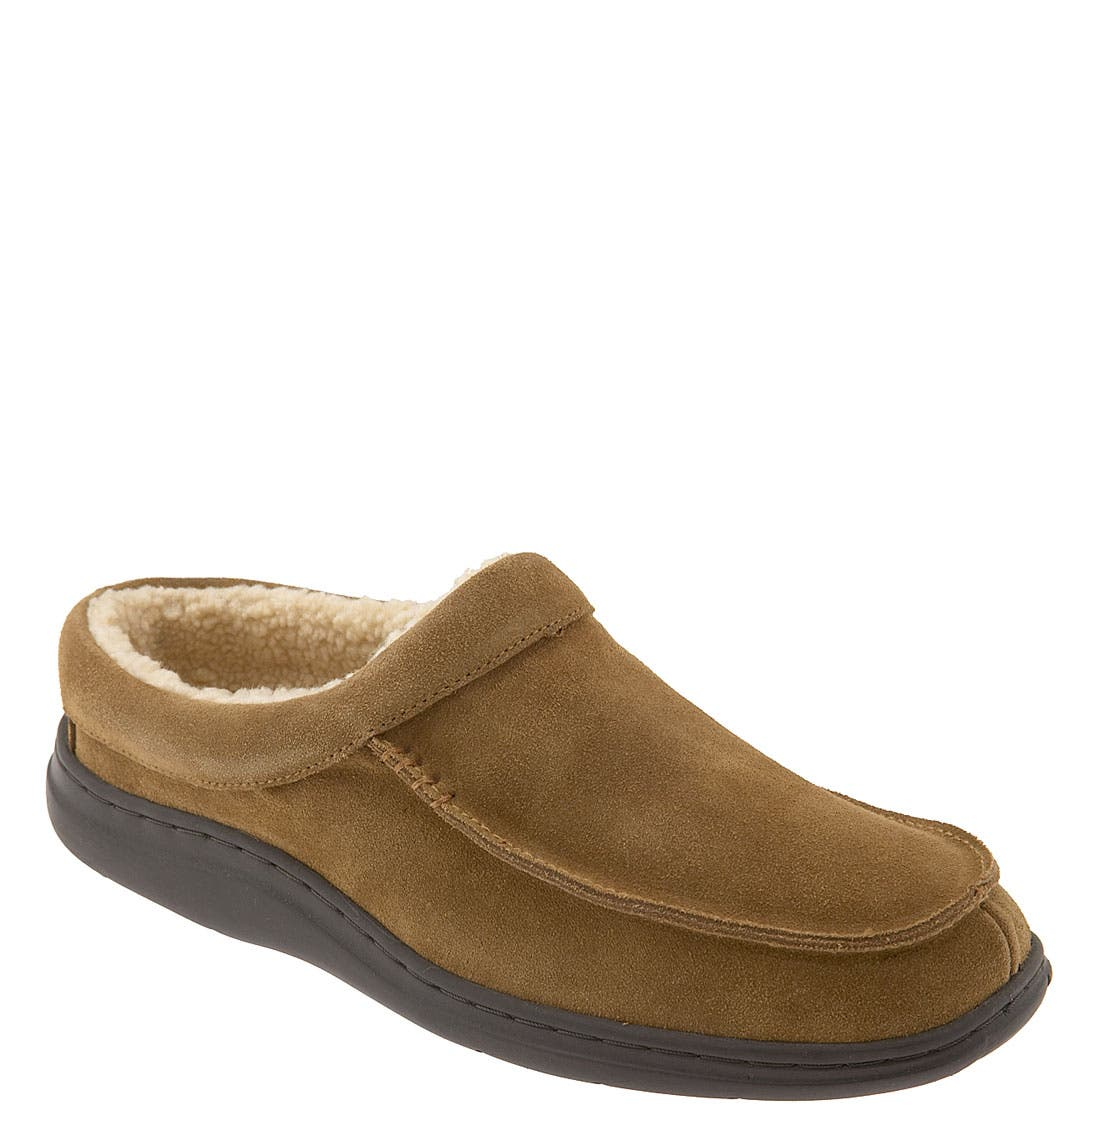 'Edmonton' Slipper,                         Main,                         color, TAN